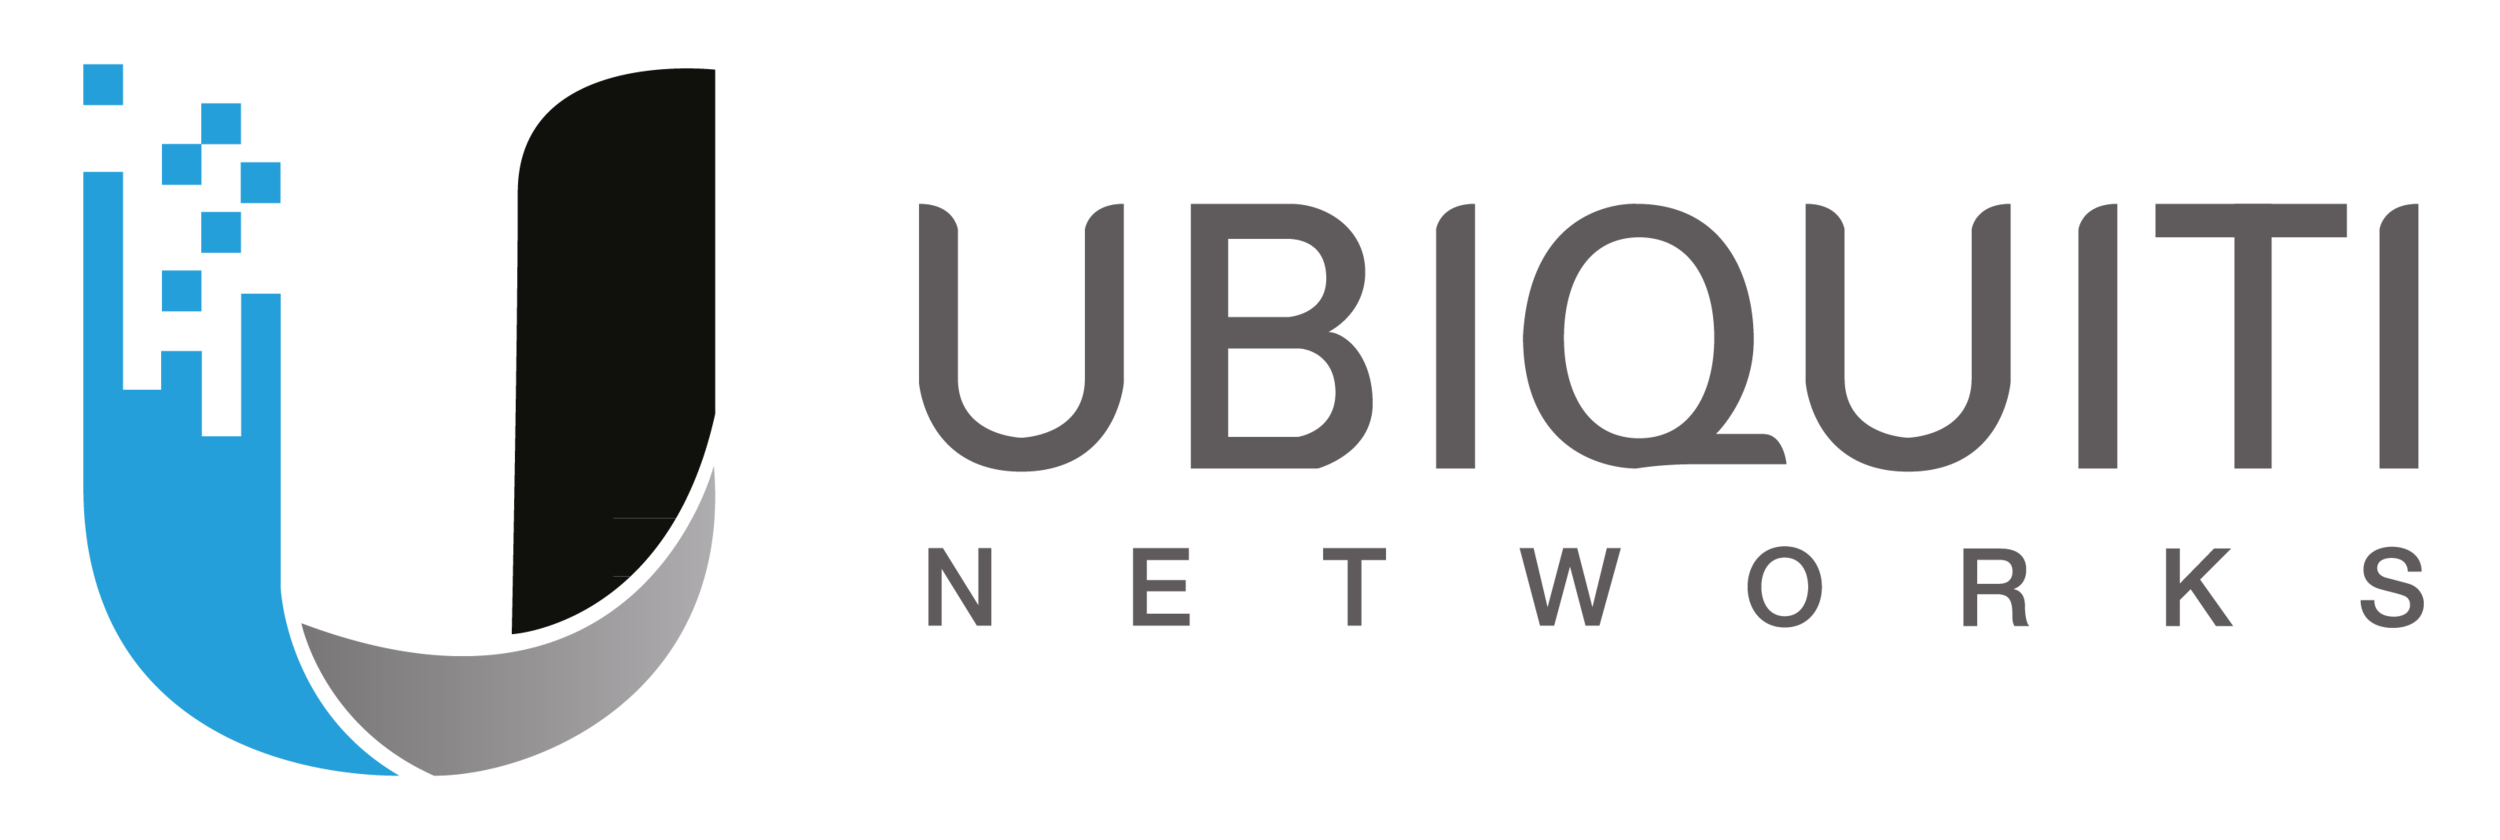 Ubiquiti Networks Wireless Solutions